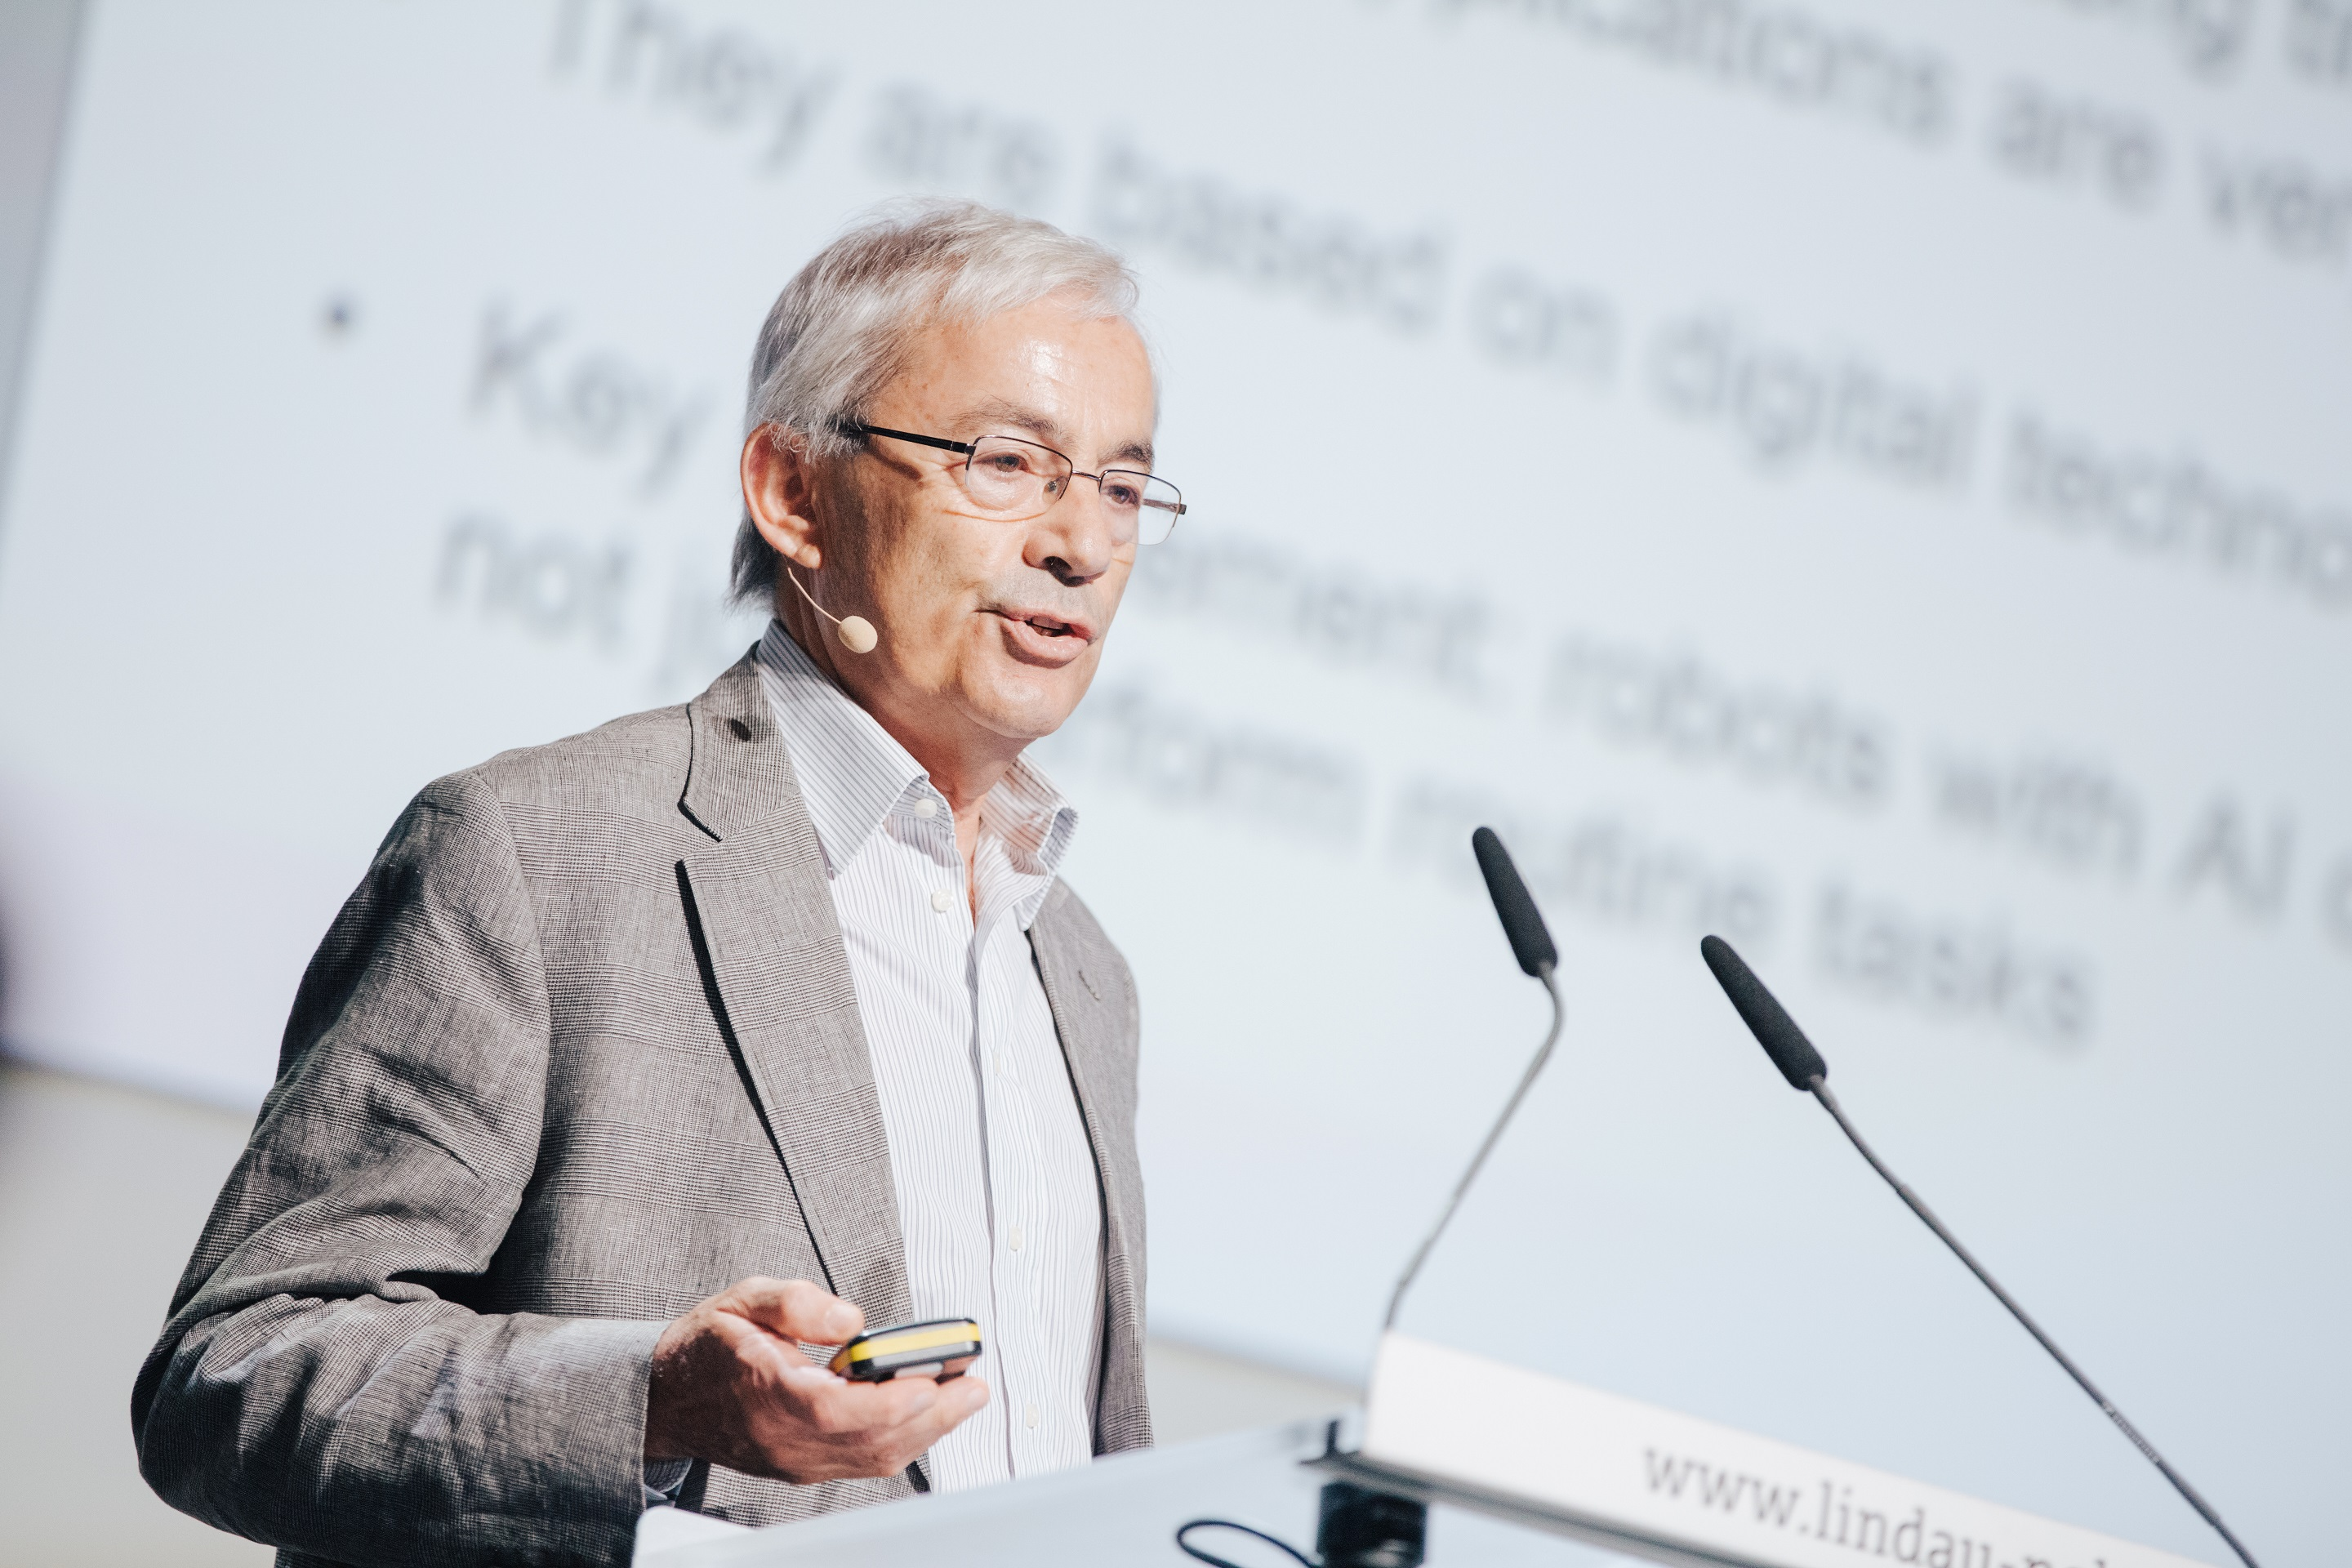 Christopher Pissarides during his lecture at the 6th Lindau Meeting on Economic Sciences, Picture/Credit: Julia Nimke/Lindau Nobel Laureate Meetings